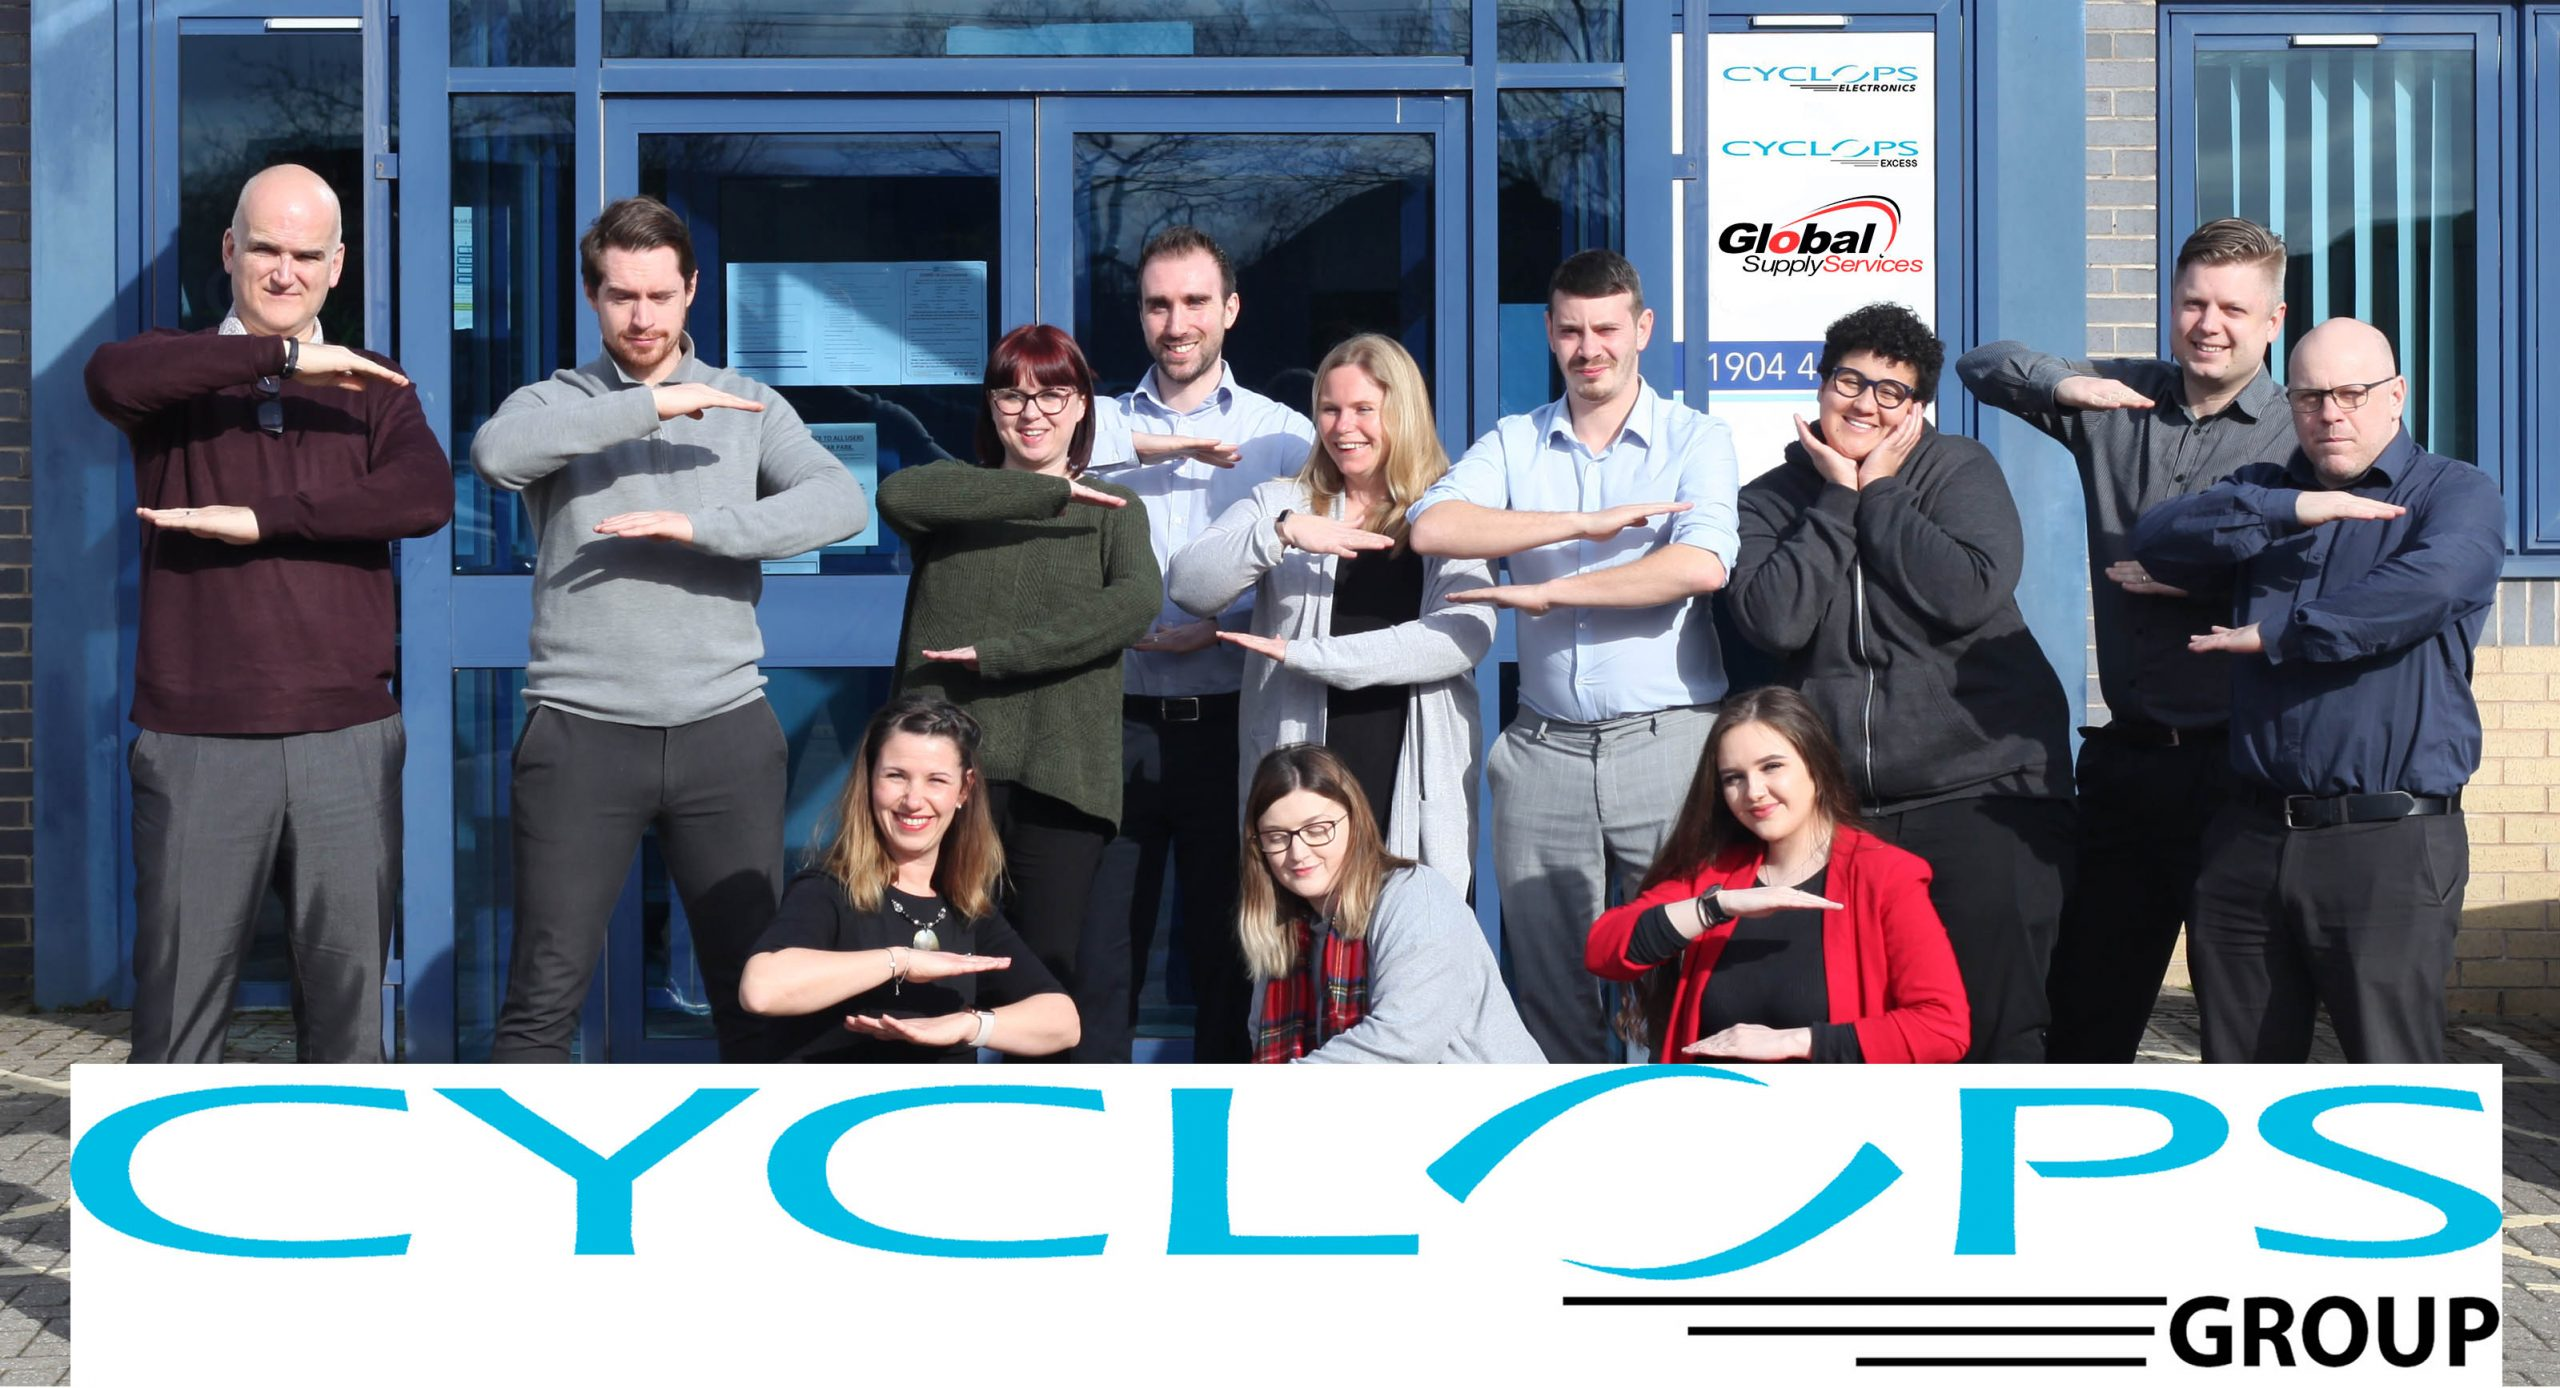 Cyclops Group Photo with logos for International Women's Day